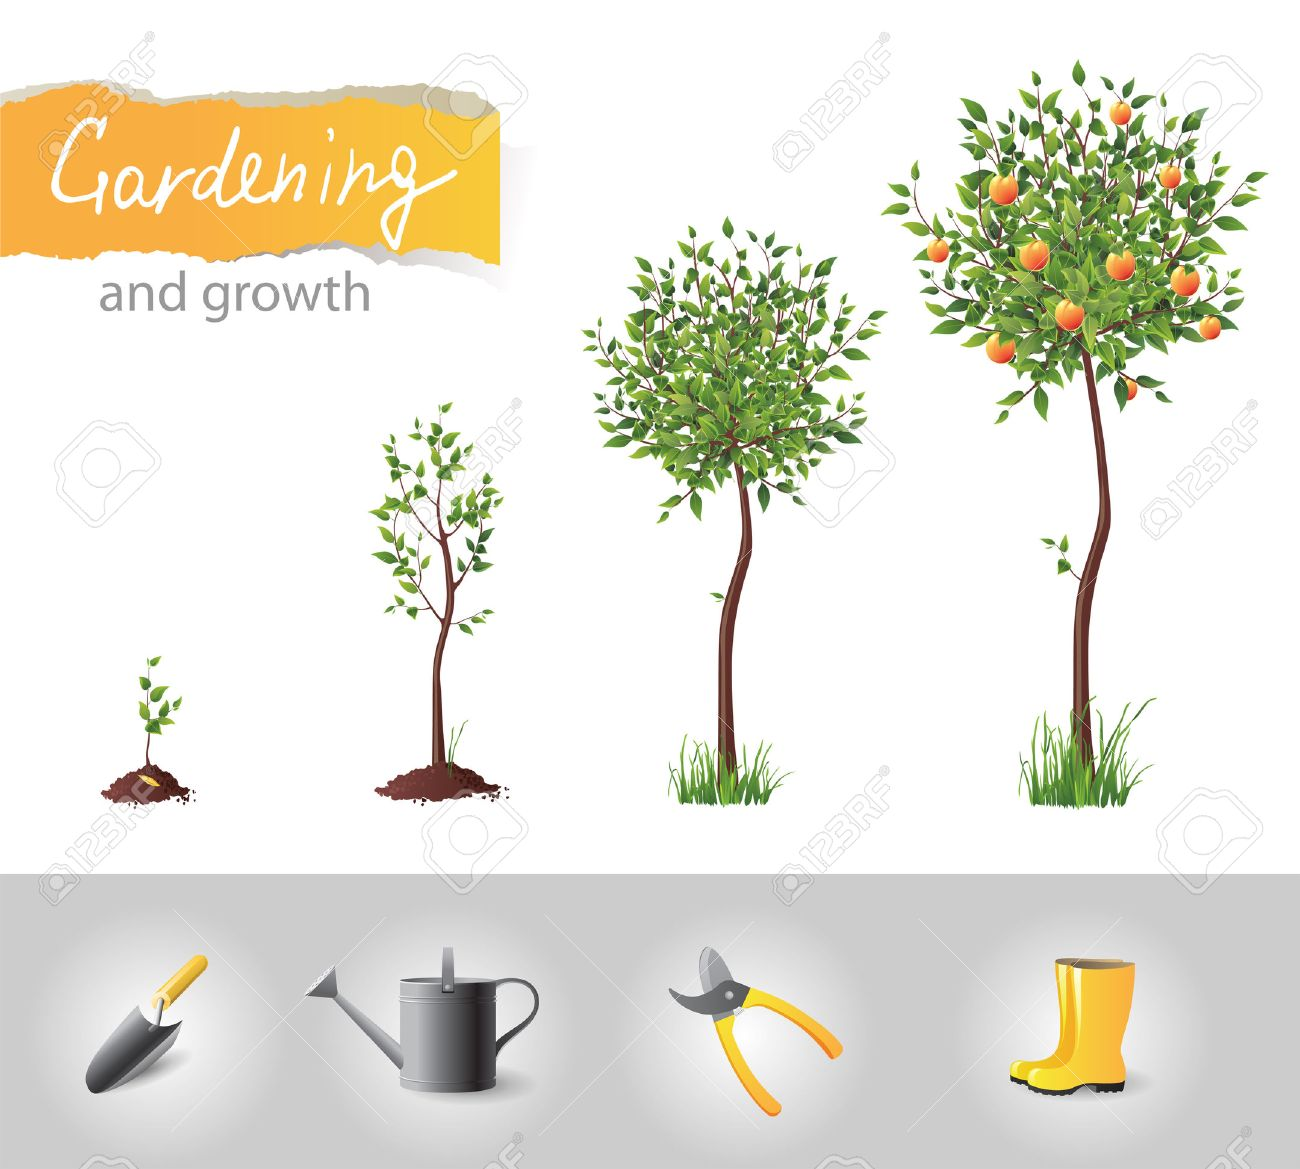 Growing fruit tree and gardening icons - 17242836